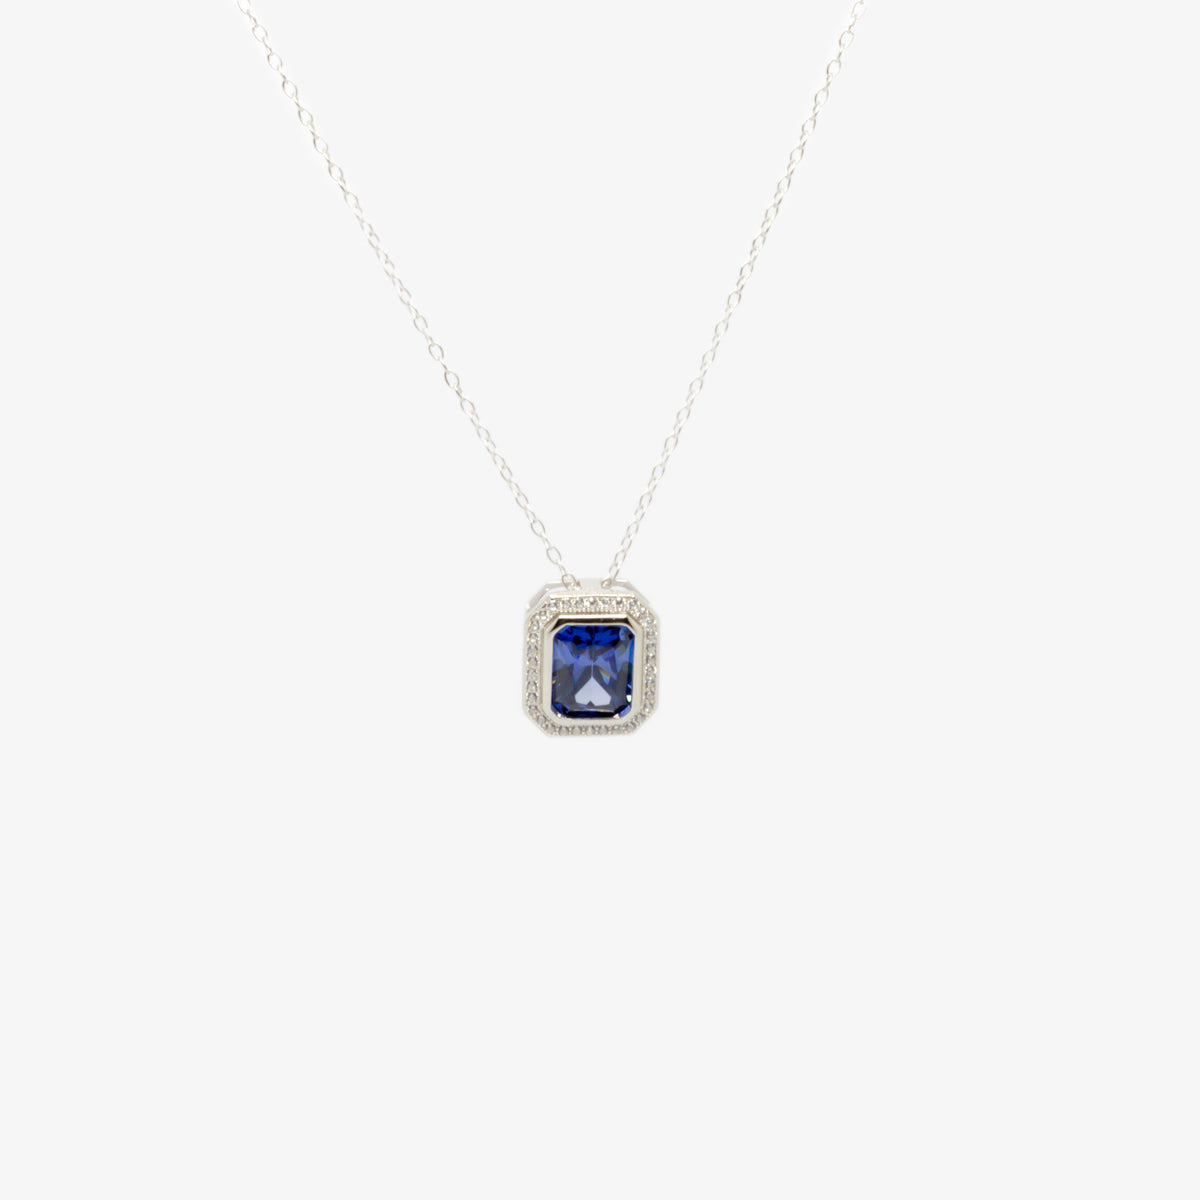 Front view picture of the dark blue cubic zirconia pendant necklace.